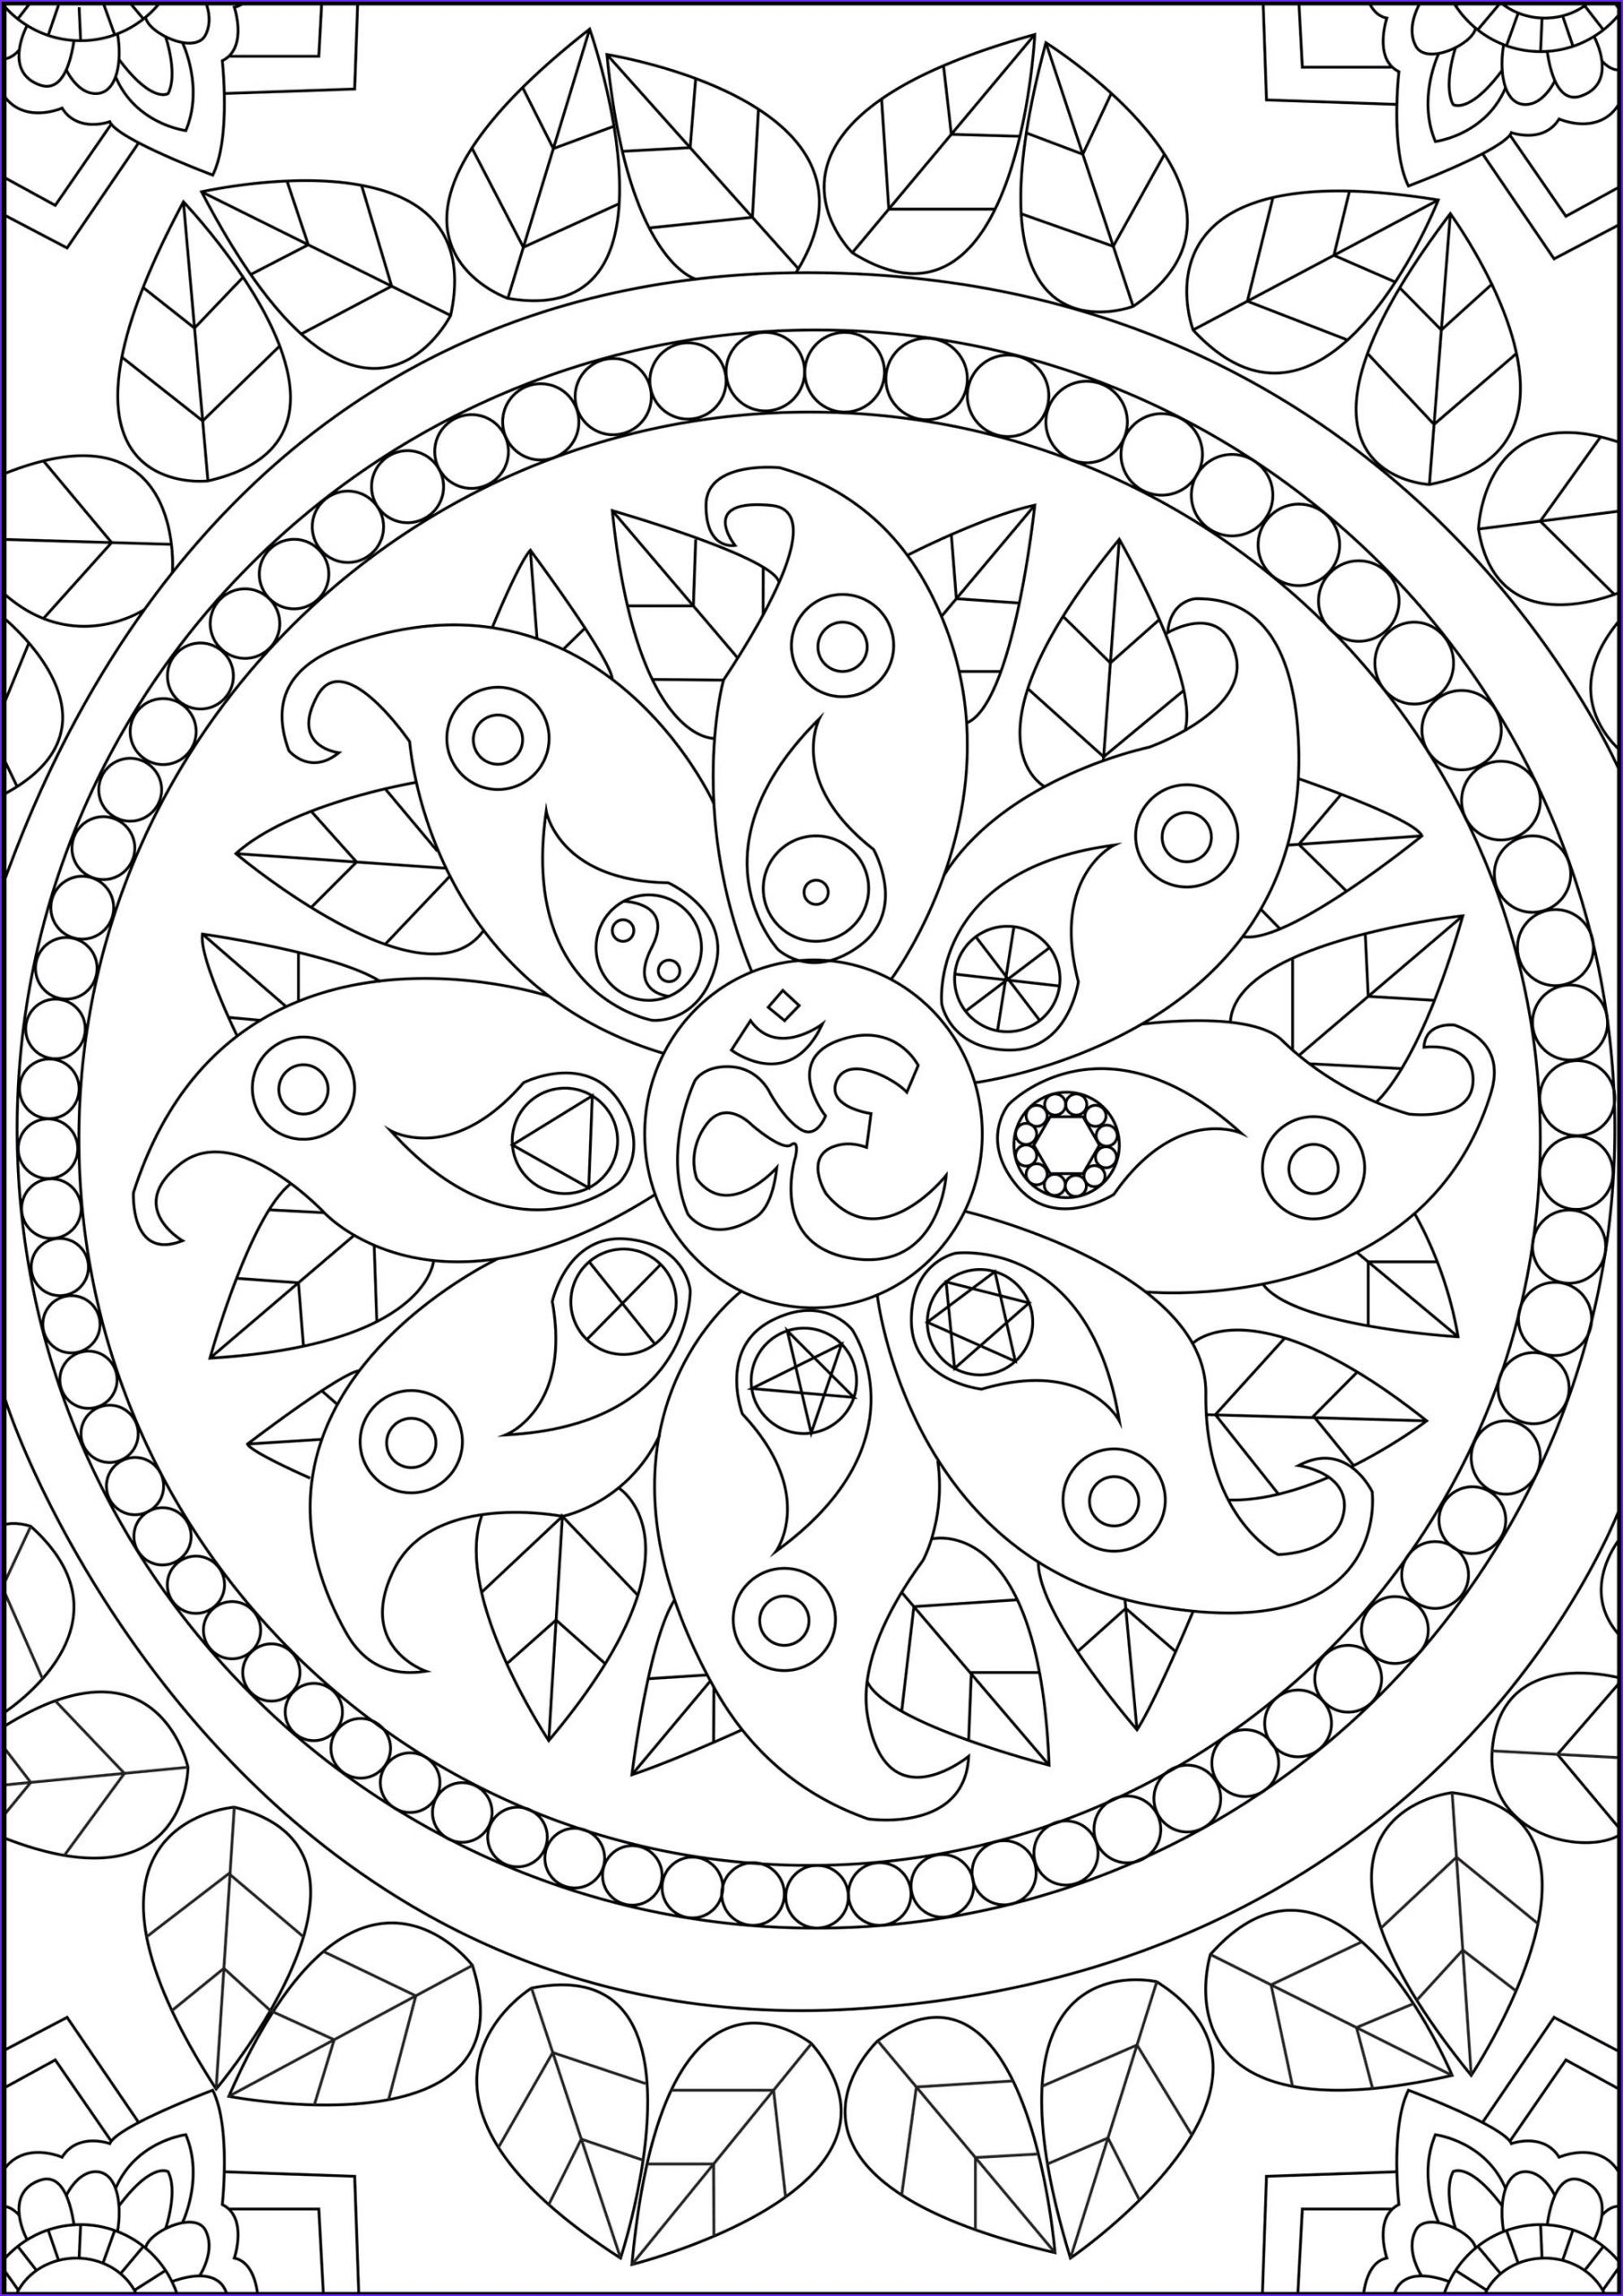 Coloring Stress Beautiful Gallery Peace Symbols Anti Stress Adult Coloring Pages